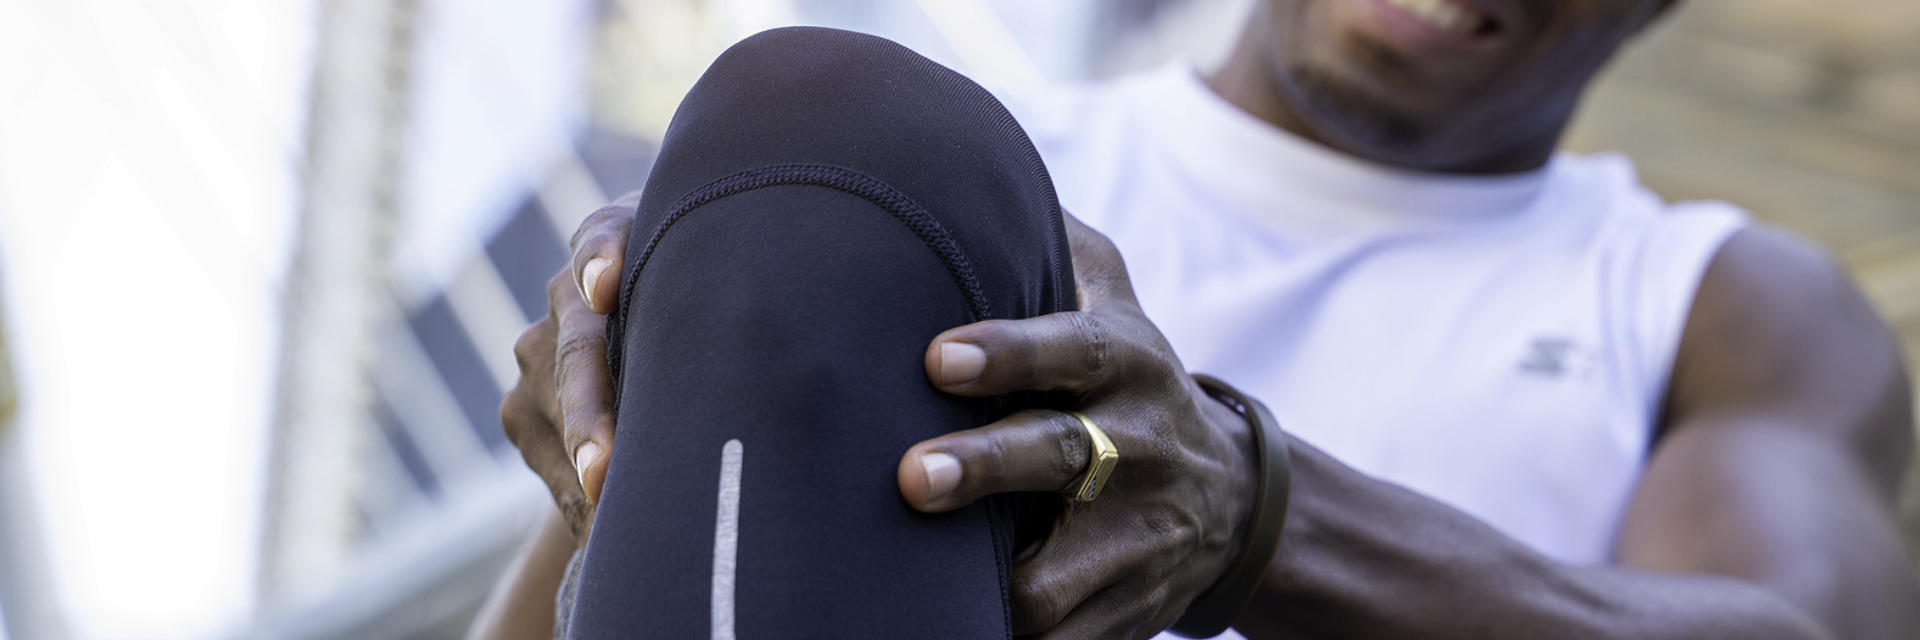 An Afro-American sportsman in pain touching the painful knee area.